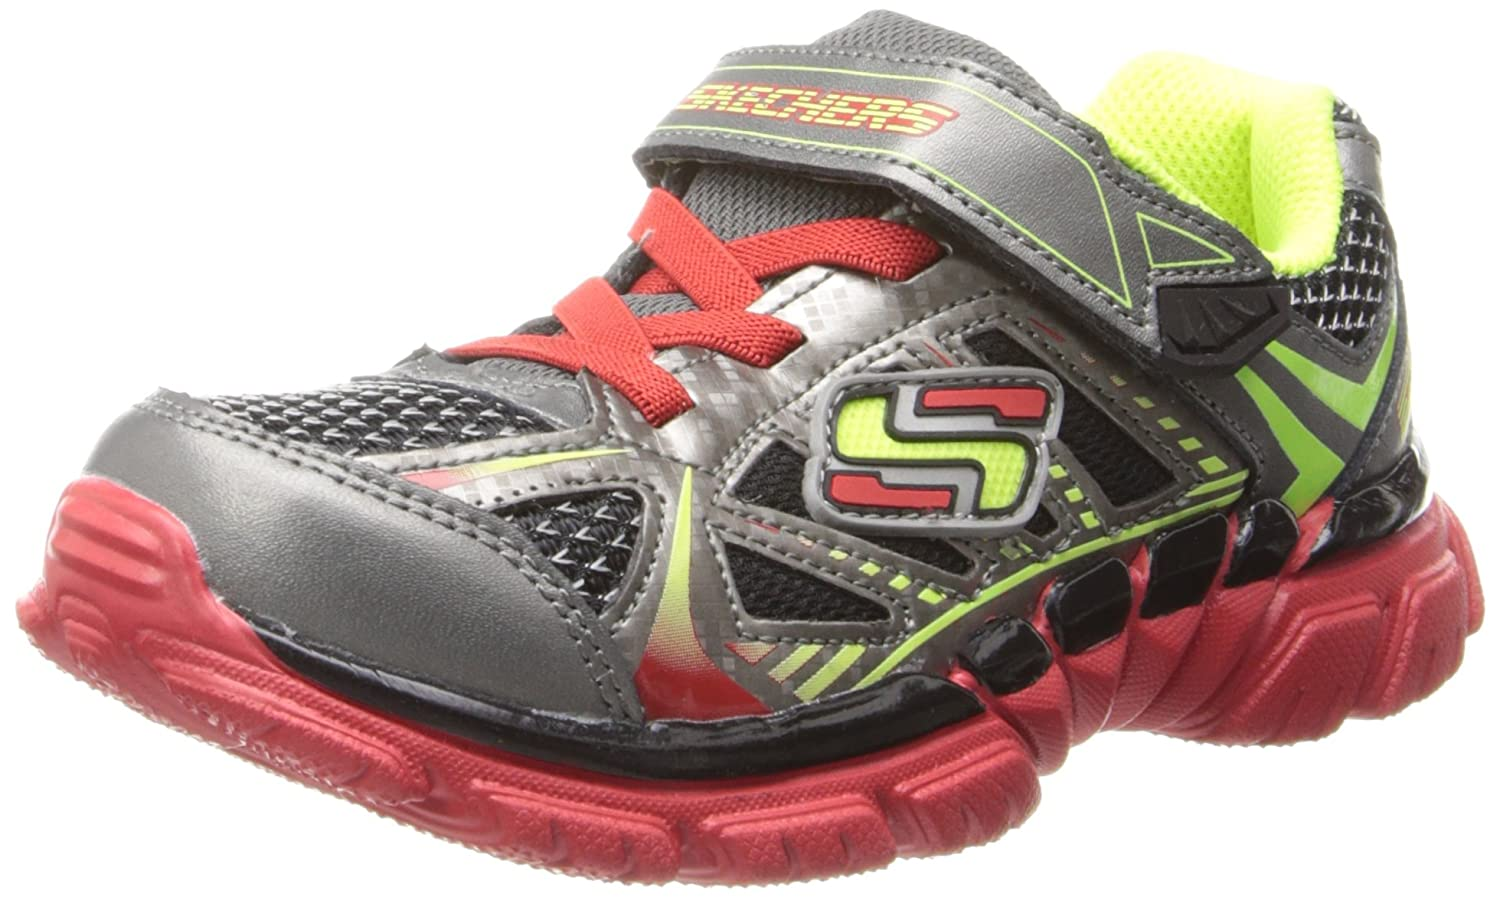 Skechers Kids 95470L Tough Trax Athletic Sneaker (Little Kid) 6pm SKECHERS Kids Footwear RP